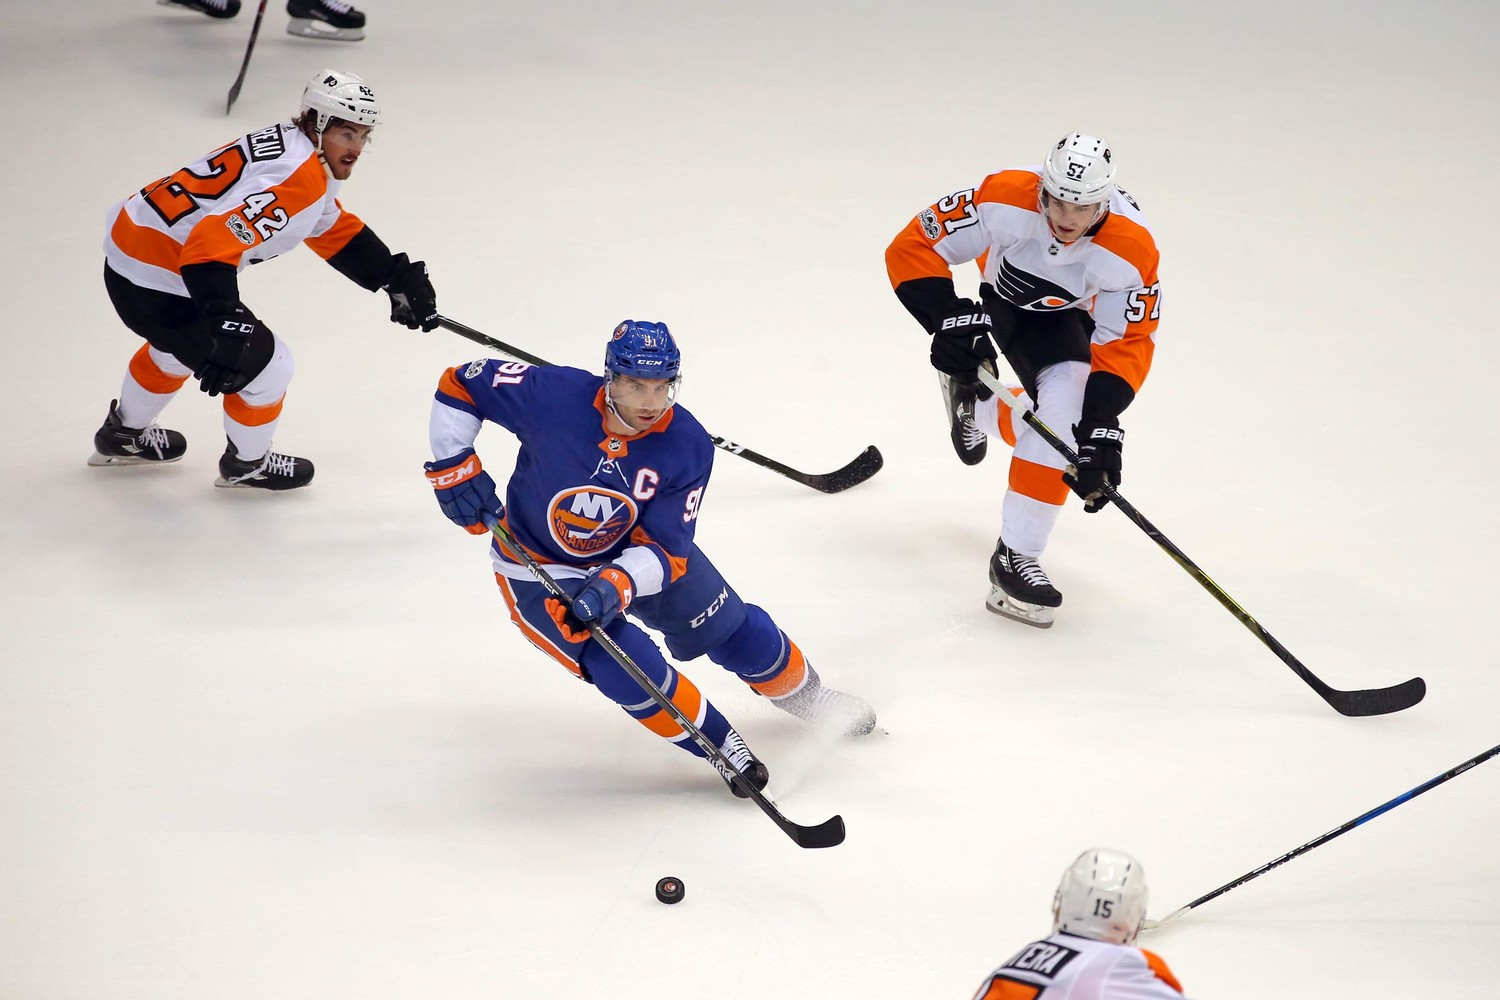 Islanders captain john Tavares scored two goals, including the overtime winner, in the team's preseason opener at NYCB Live's Nassau Veterans Memorial Coliseum on Sunday.